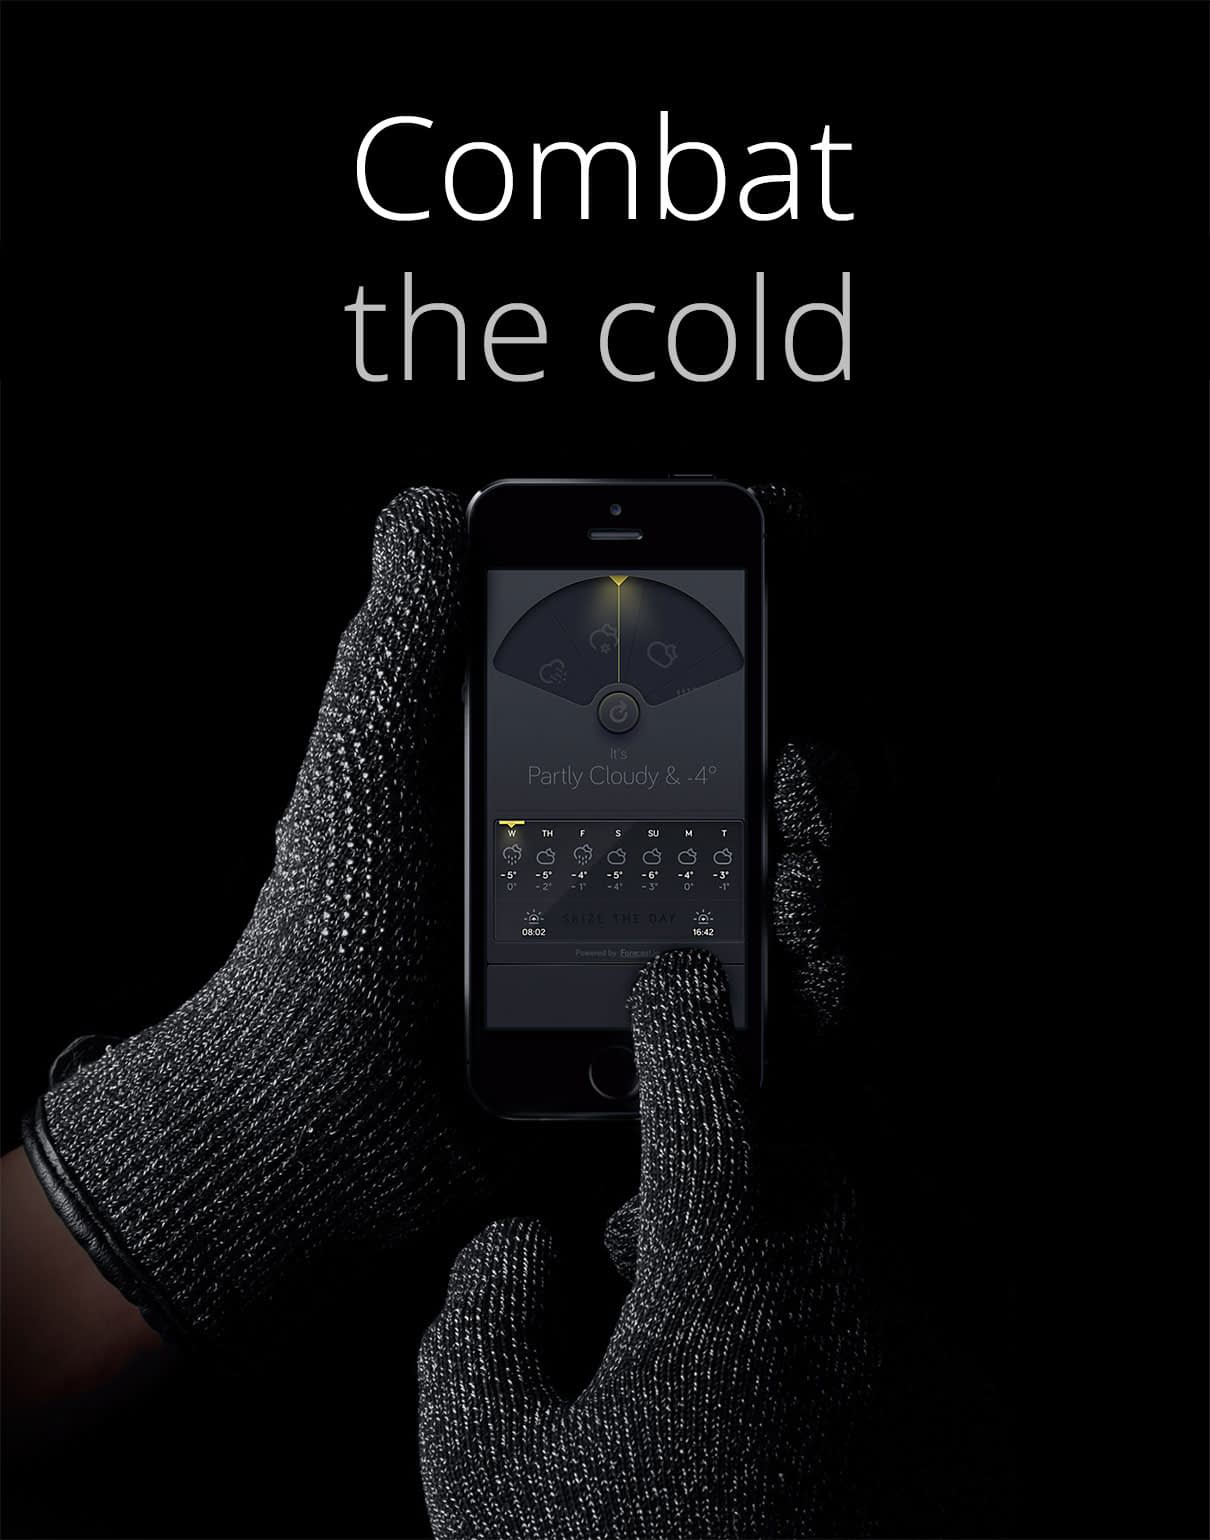 combat the cold